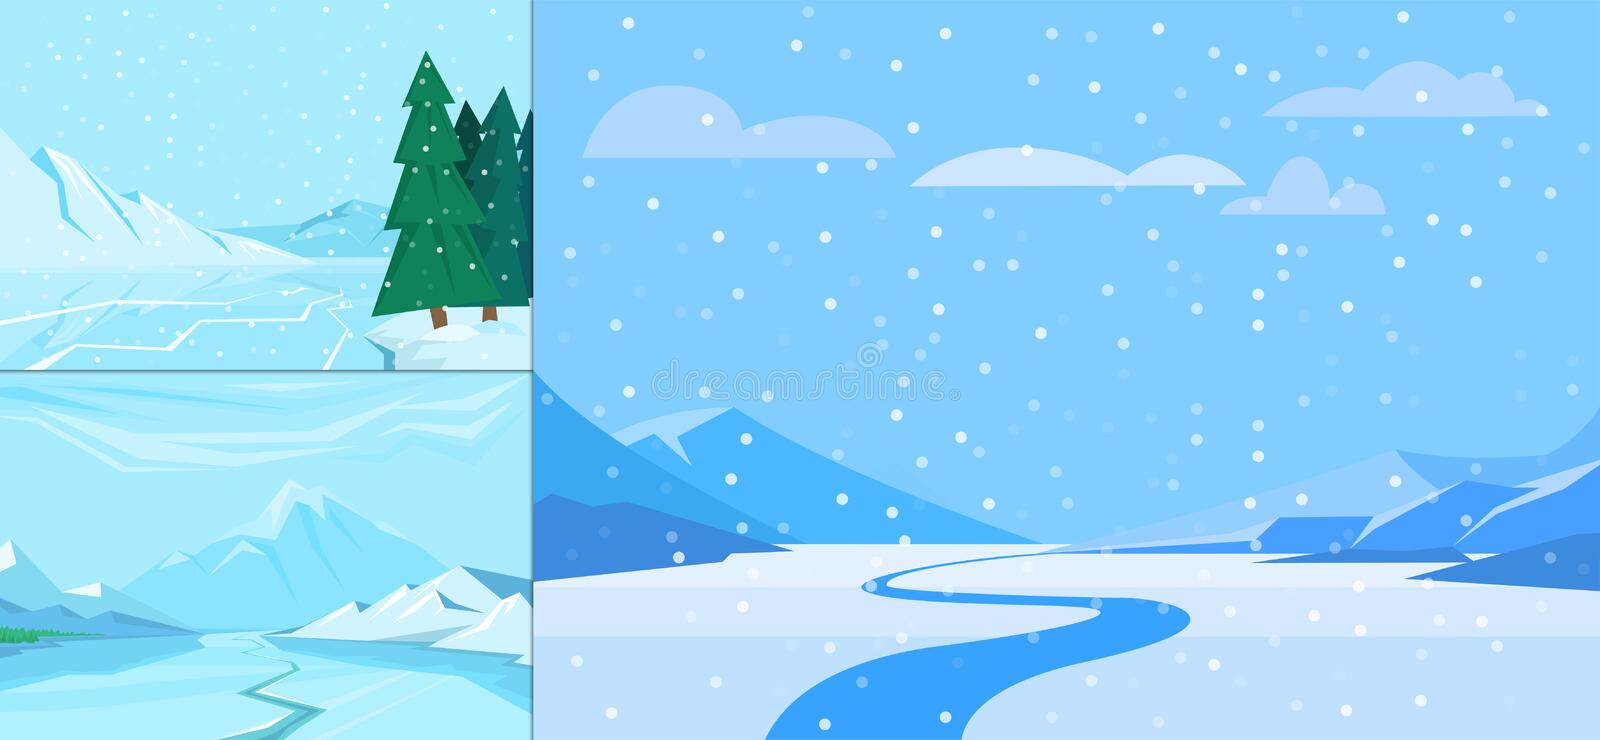 Download Winter Landscape With Christmas Tree Mountain Frozen Nature Wallpaper Beautiful Natural Vector Illustration Stock